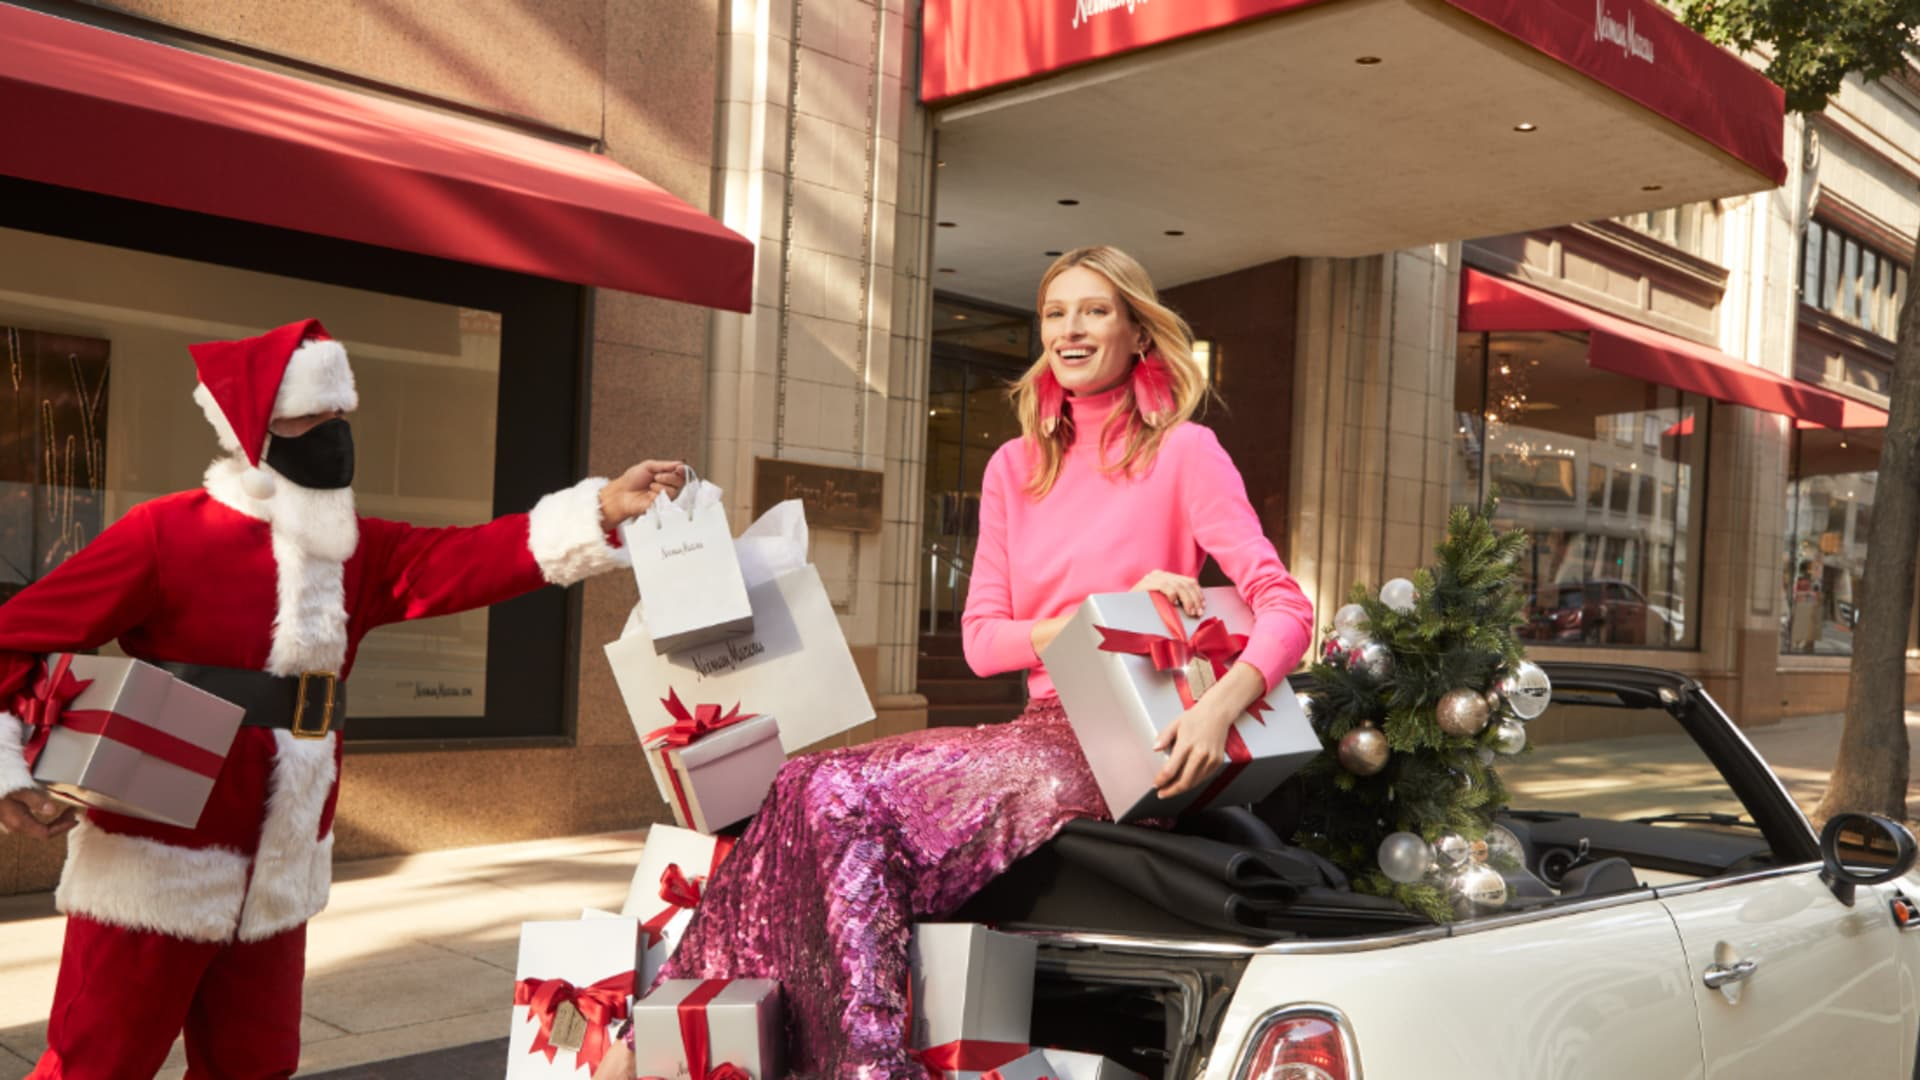 Santa Claus will deliver packages curbside, by request, at Neiman Marcus this holiday season.